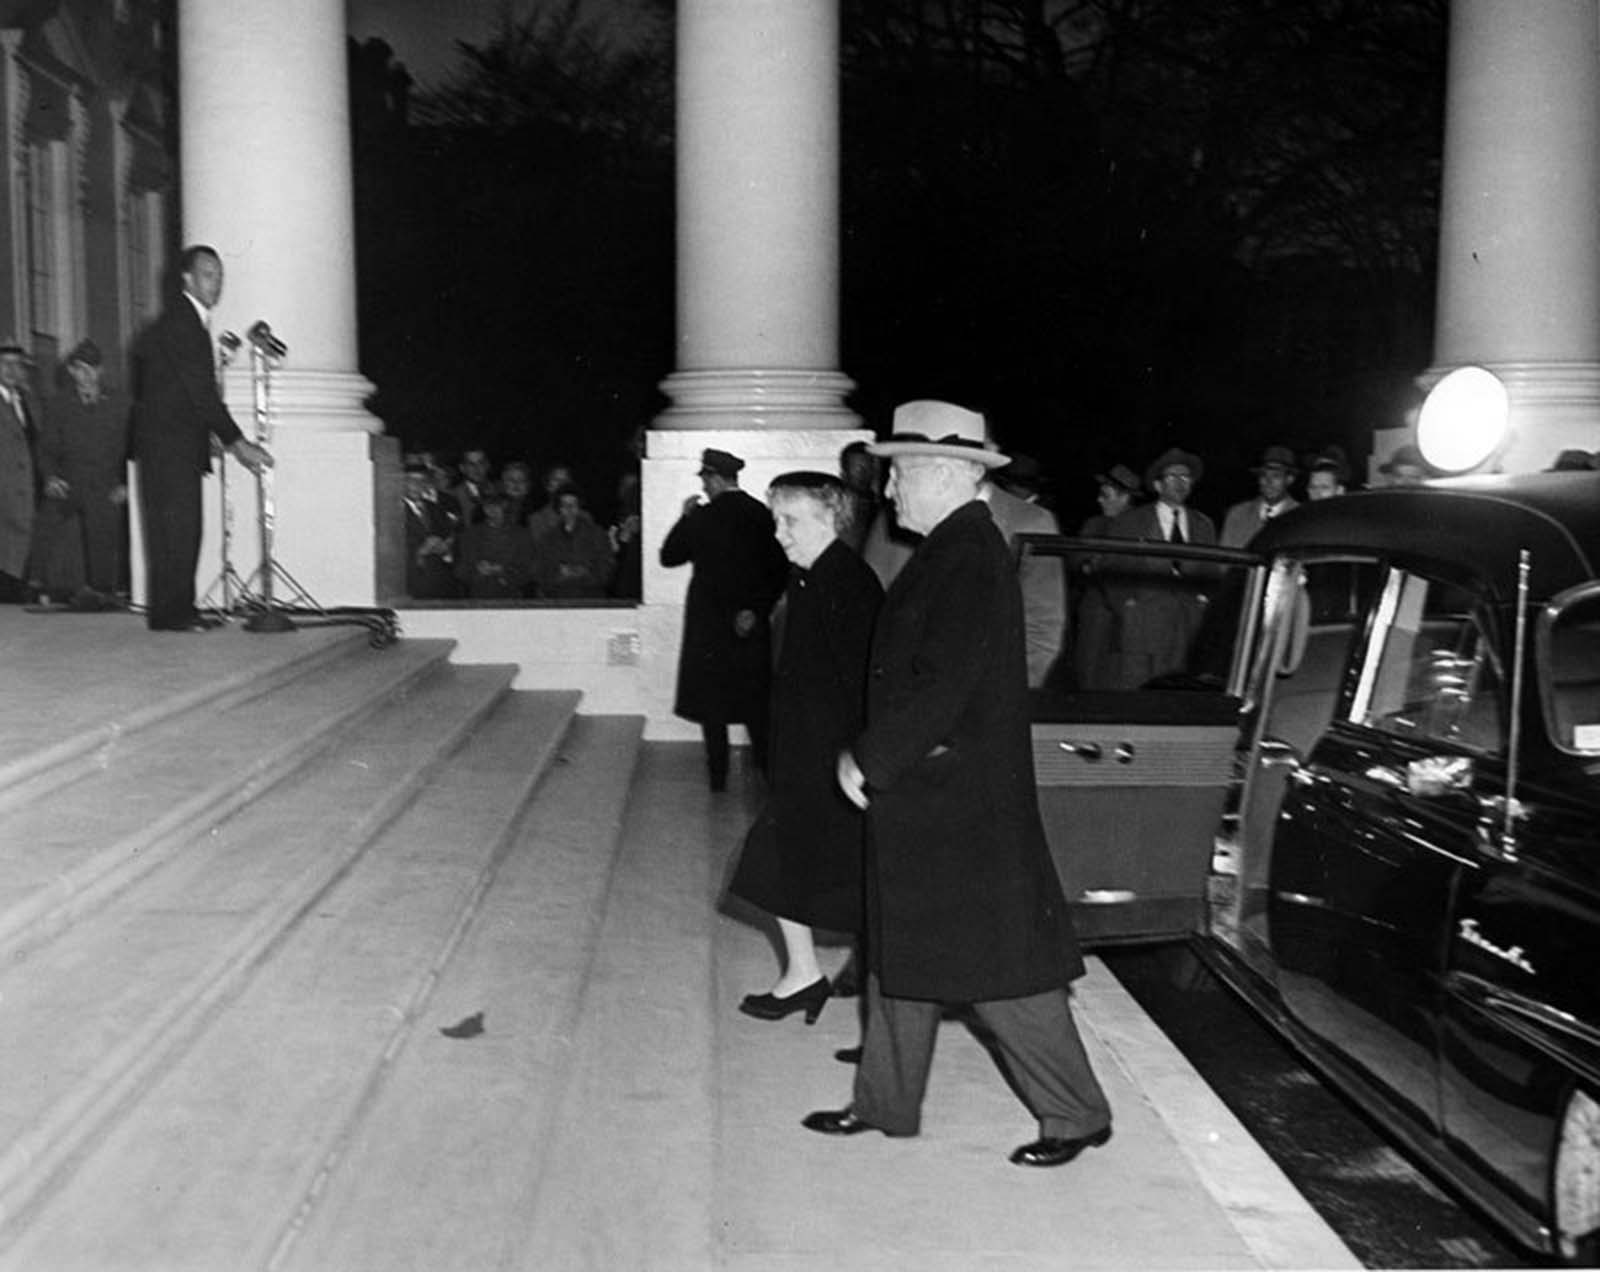 President Harry S. Truman and First Lady Bess Truman returning to the White House. 1952.